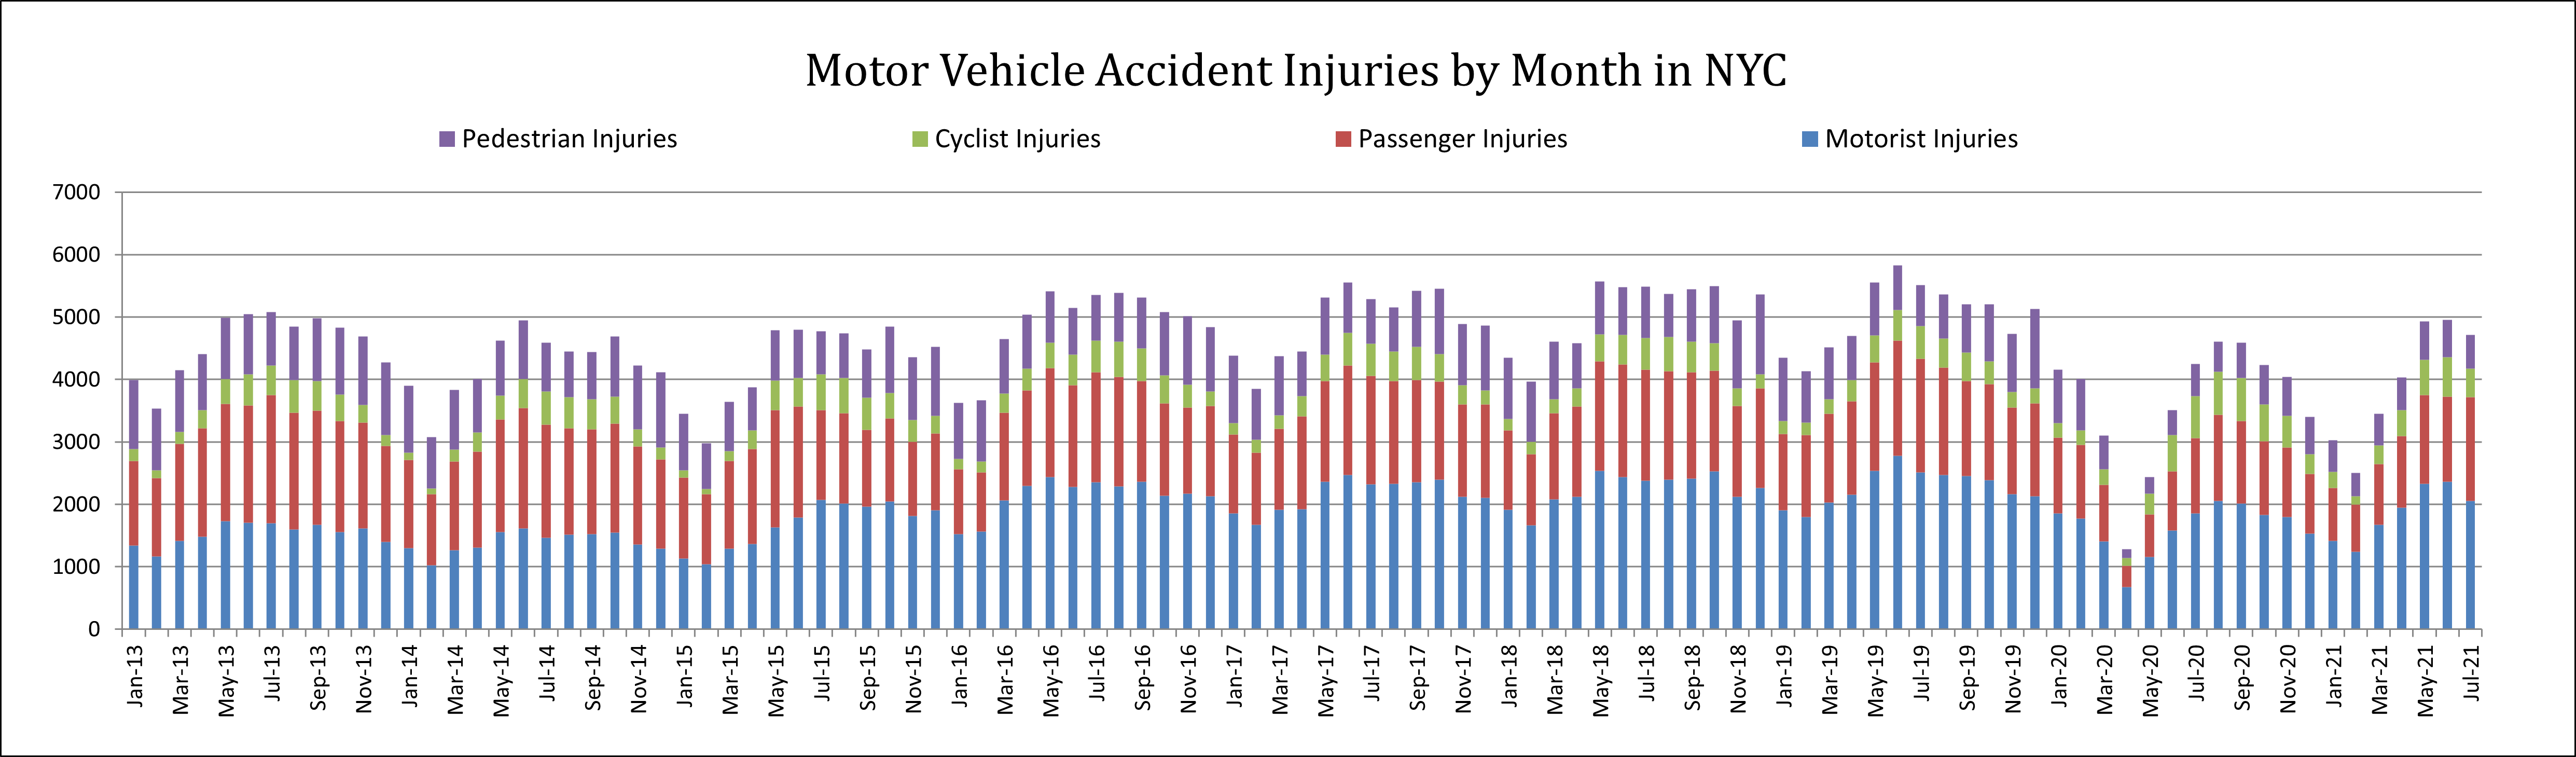 Motor vehcile accident injuries by category NYC July 21